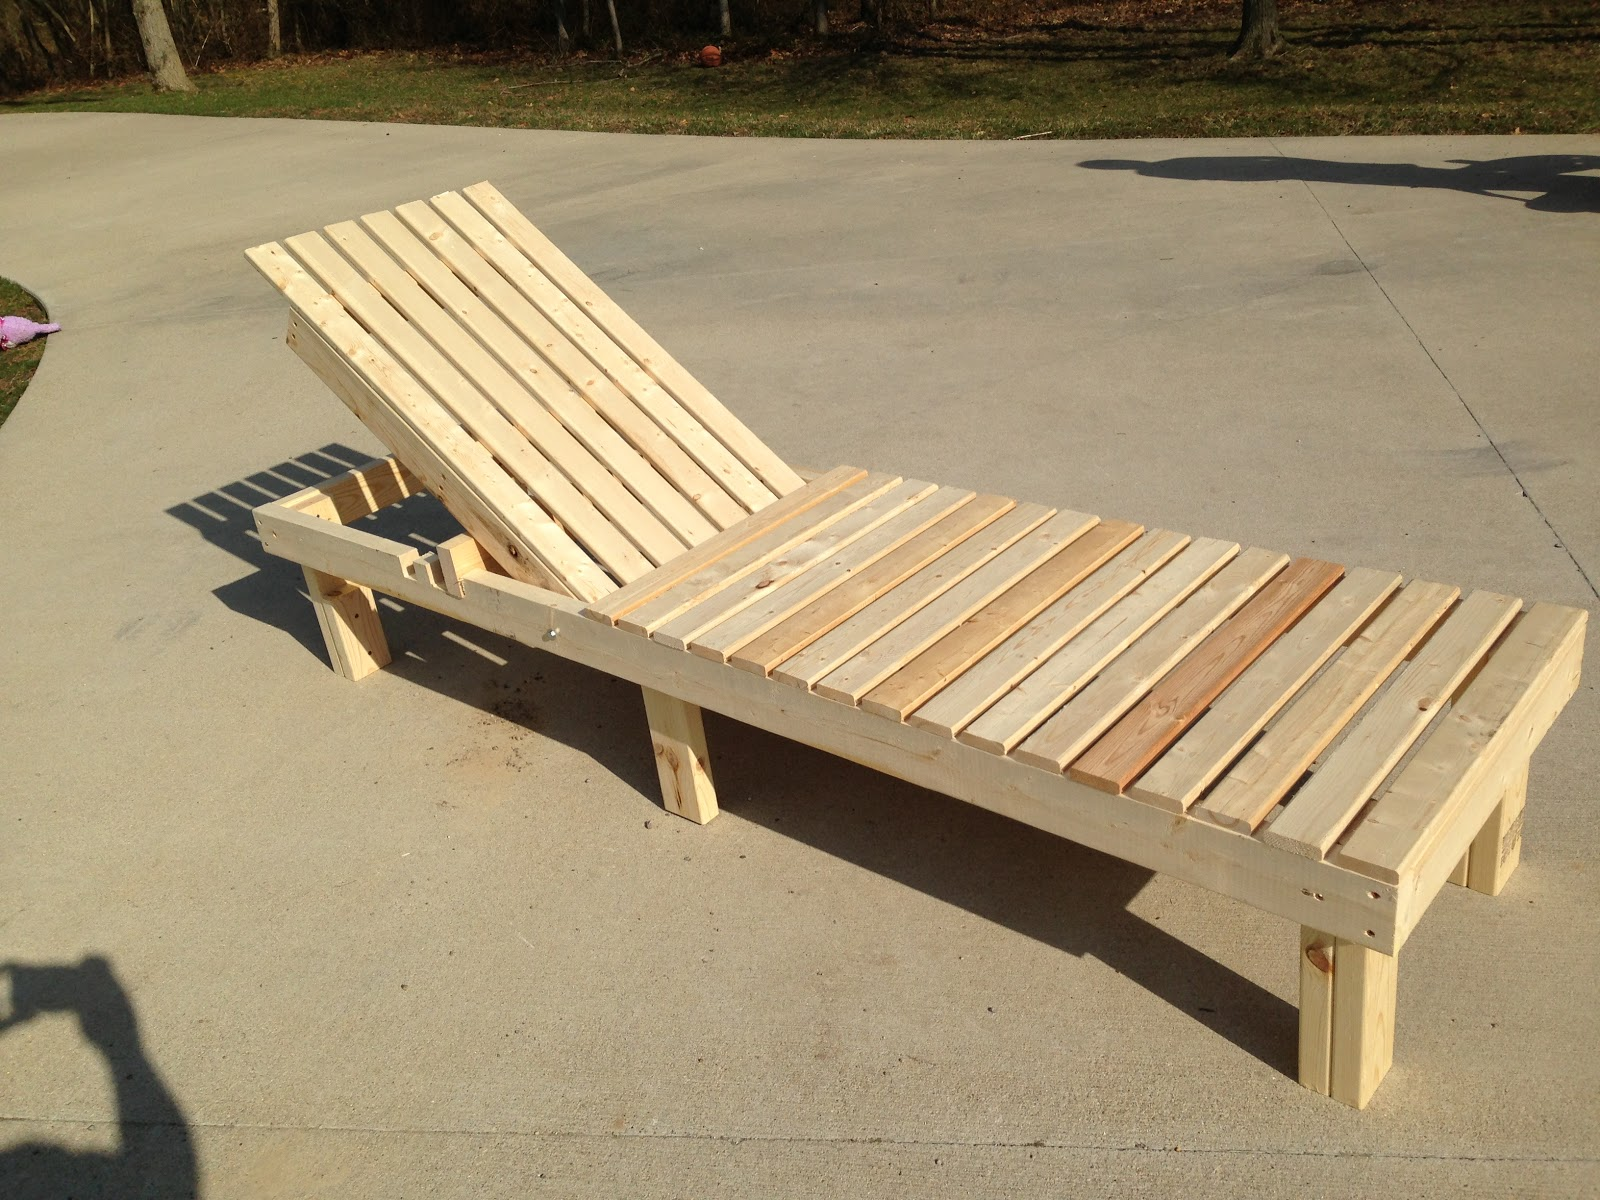 Wooden Lounge Chair Plans Diy Kids Handy Hubby The King Squad